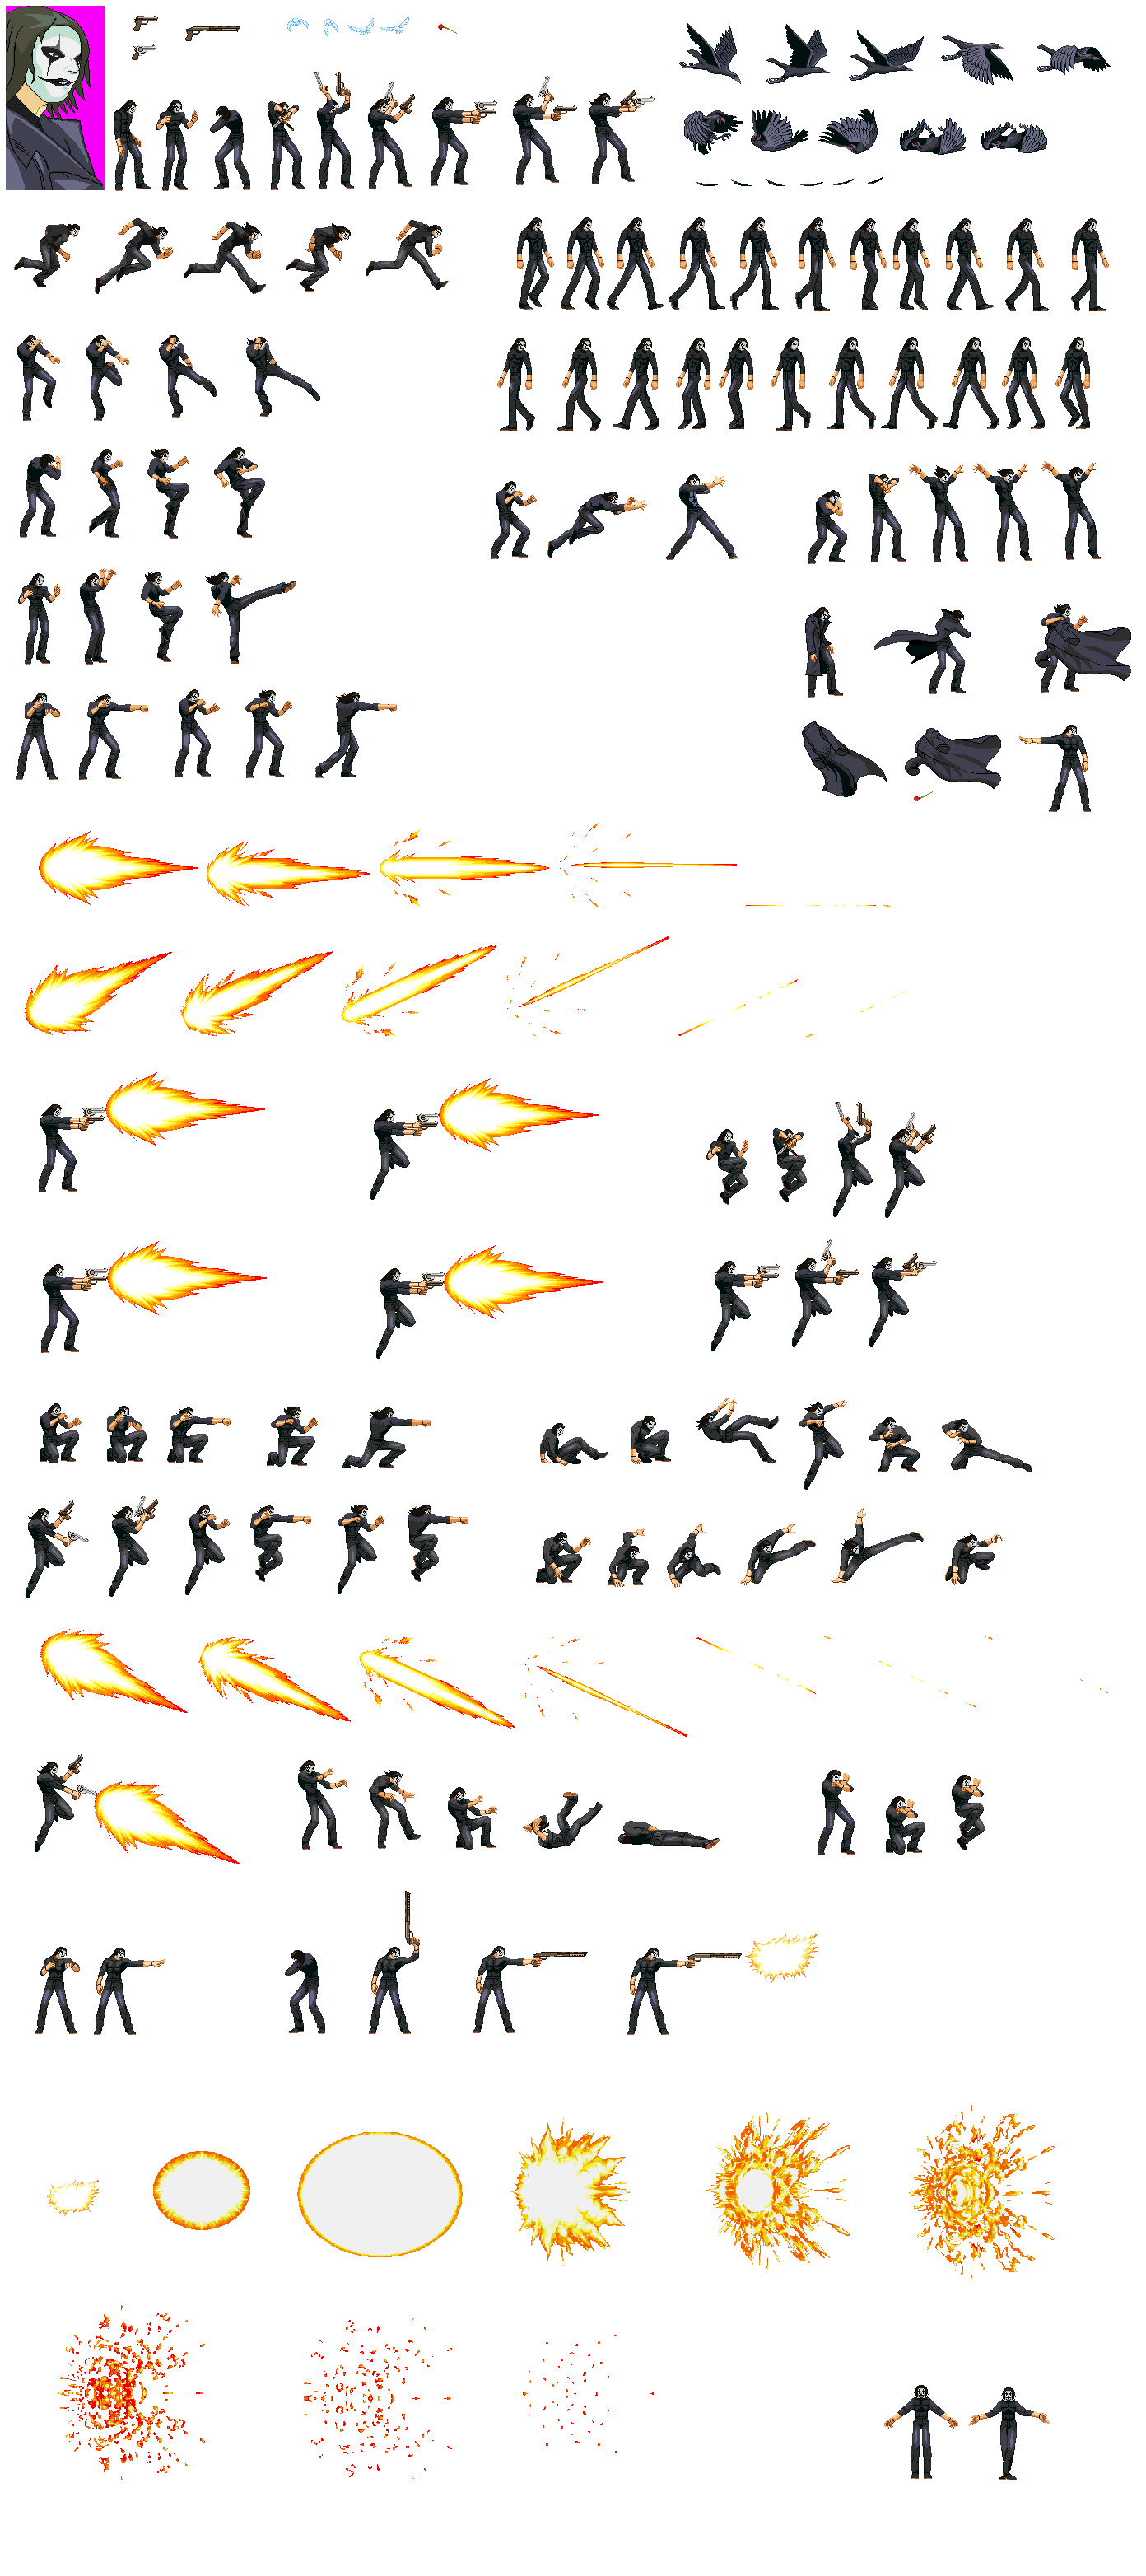 [Image: crow-sprite-sheet-revision.png]